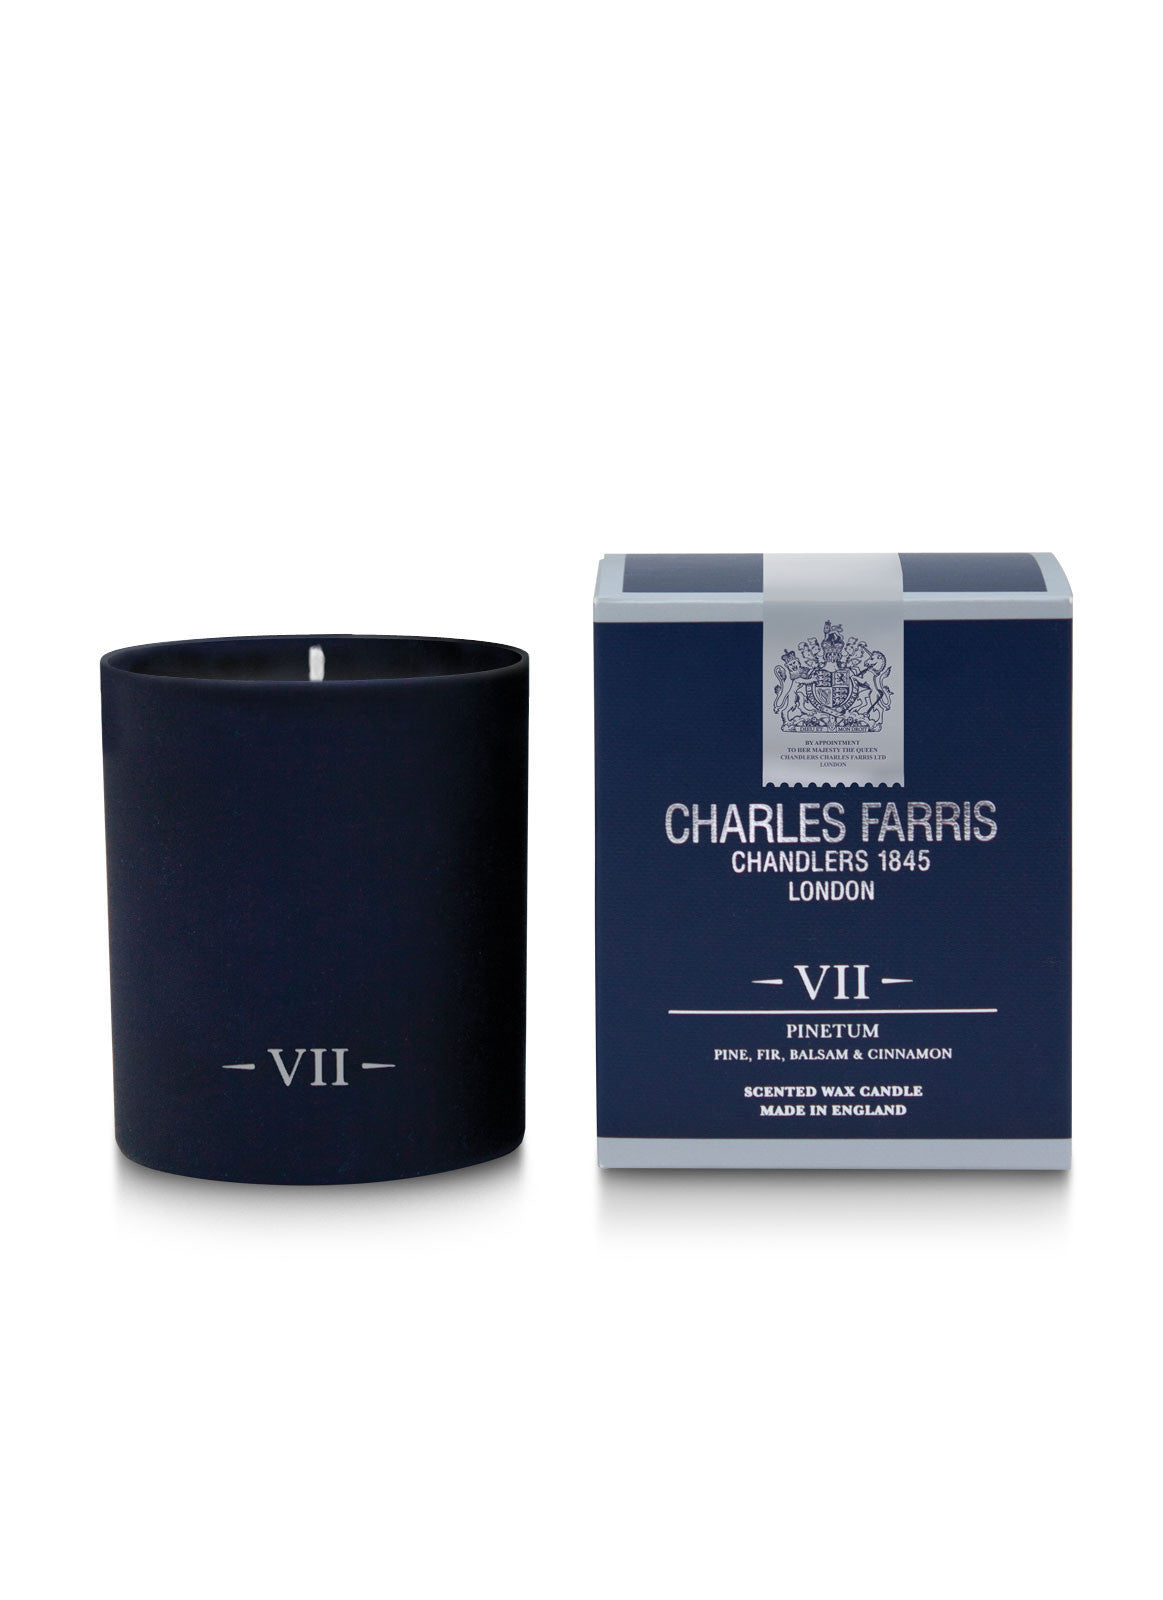 Pinetum Scented Candle | Pine, Fir, Balsam & Cinnamon